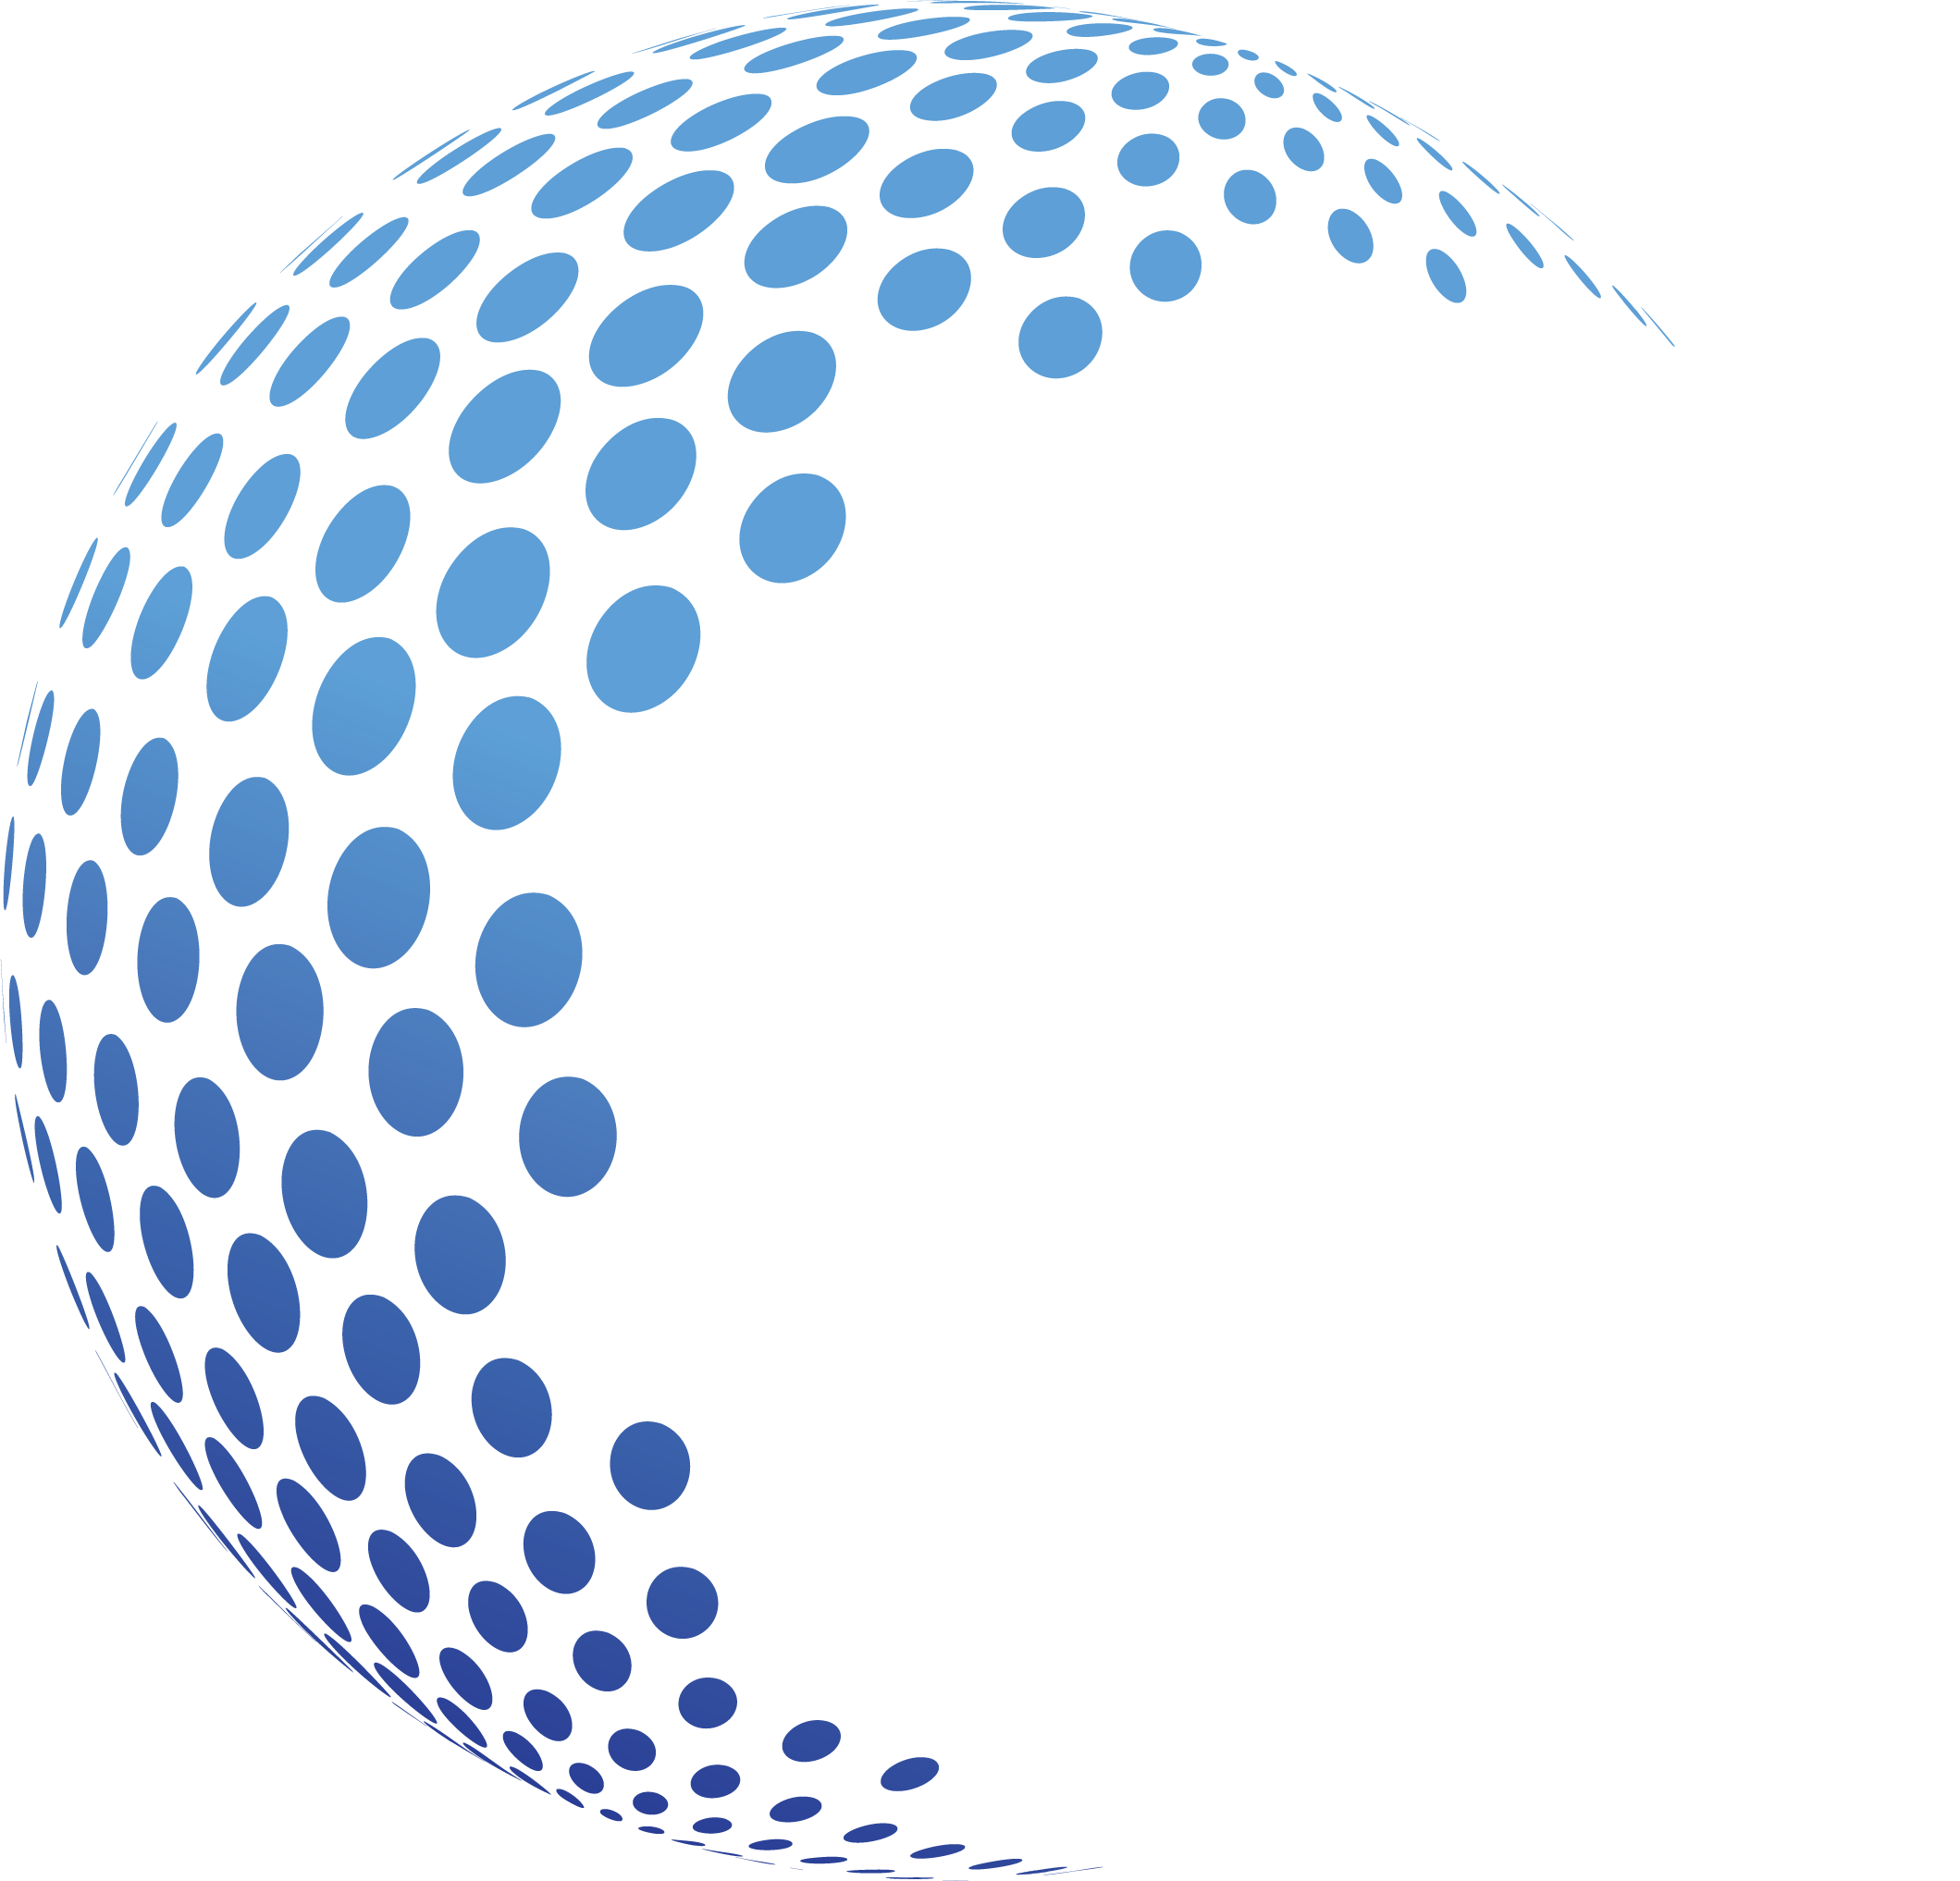 Space Security Index